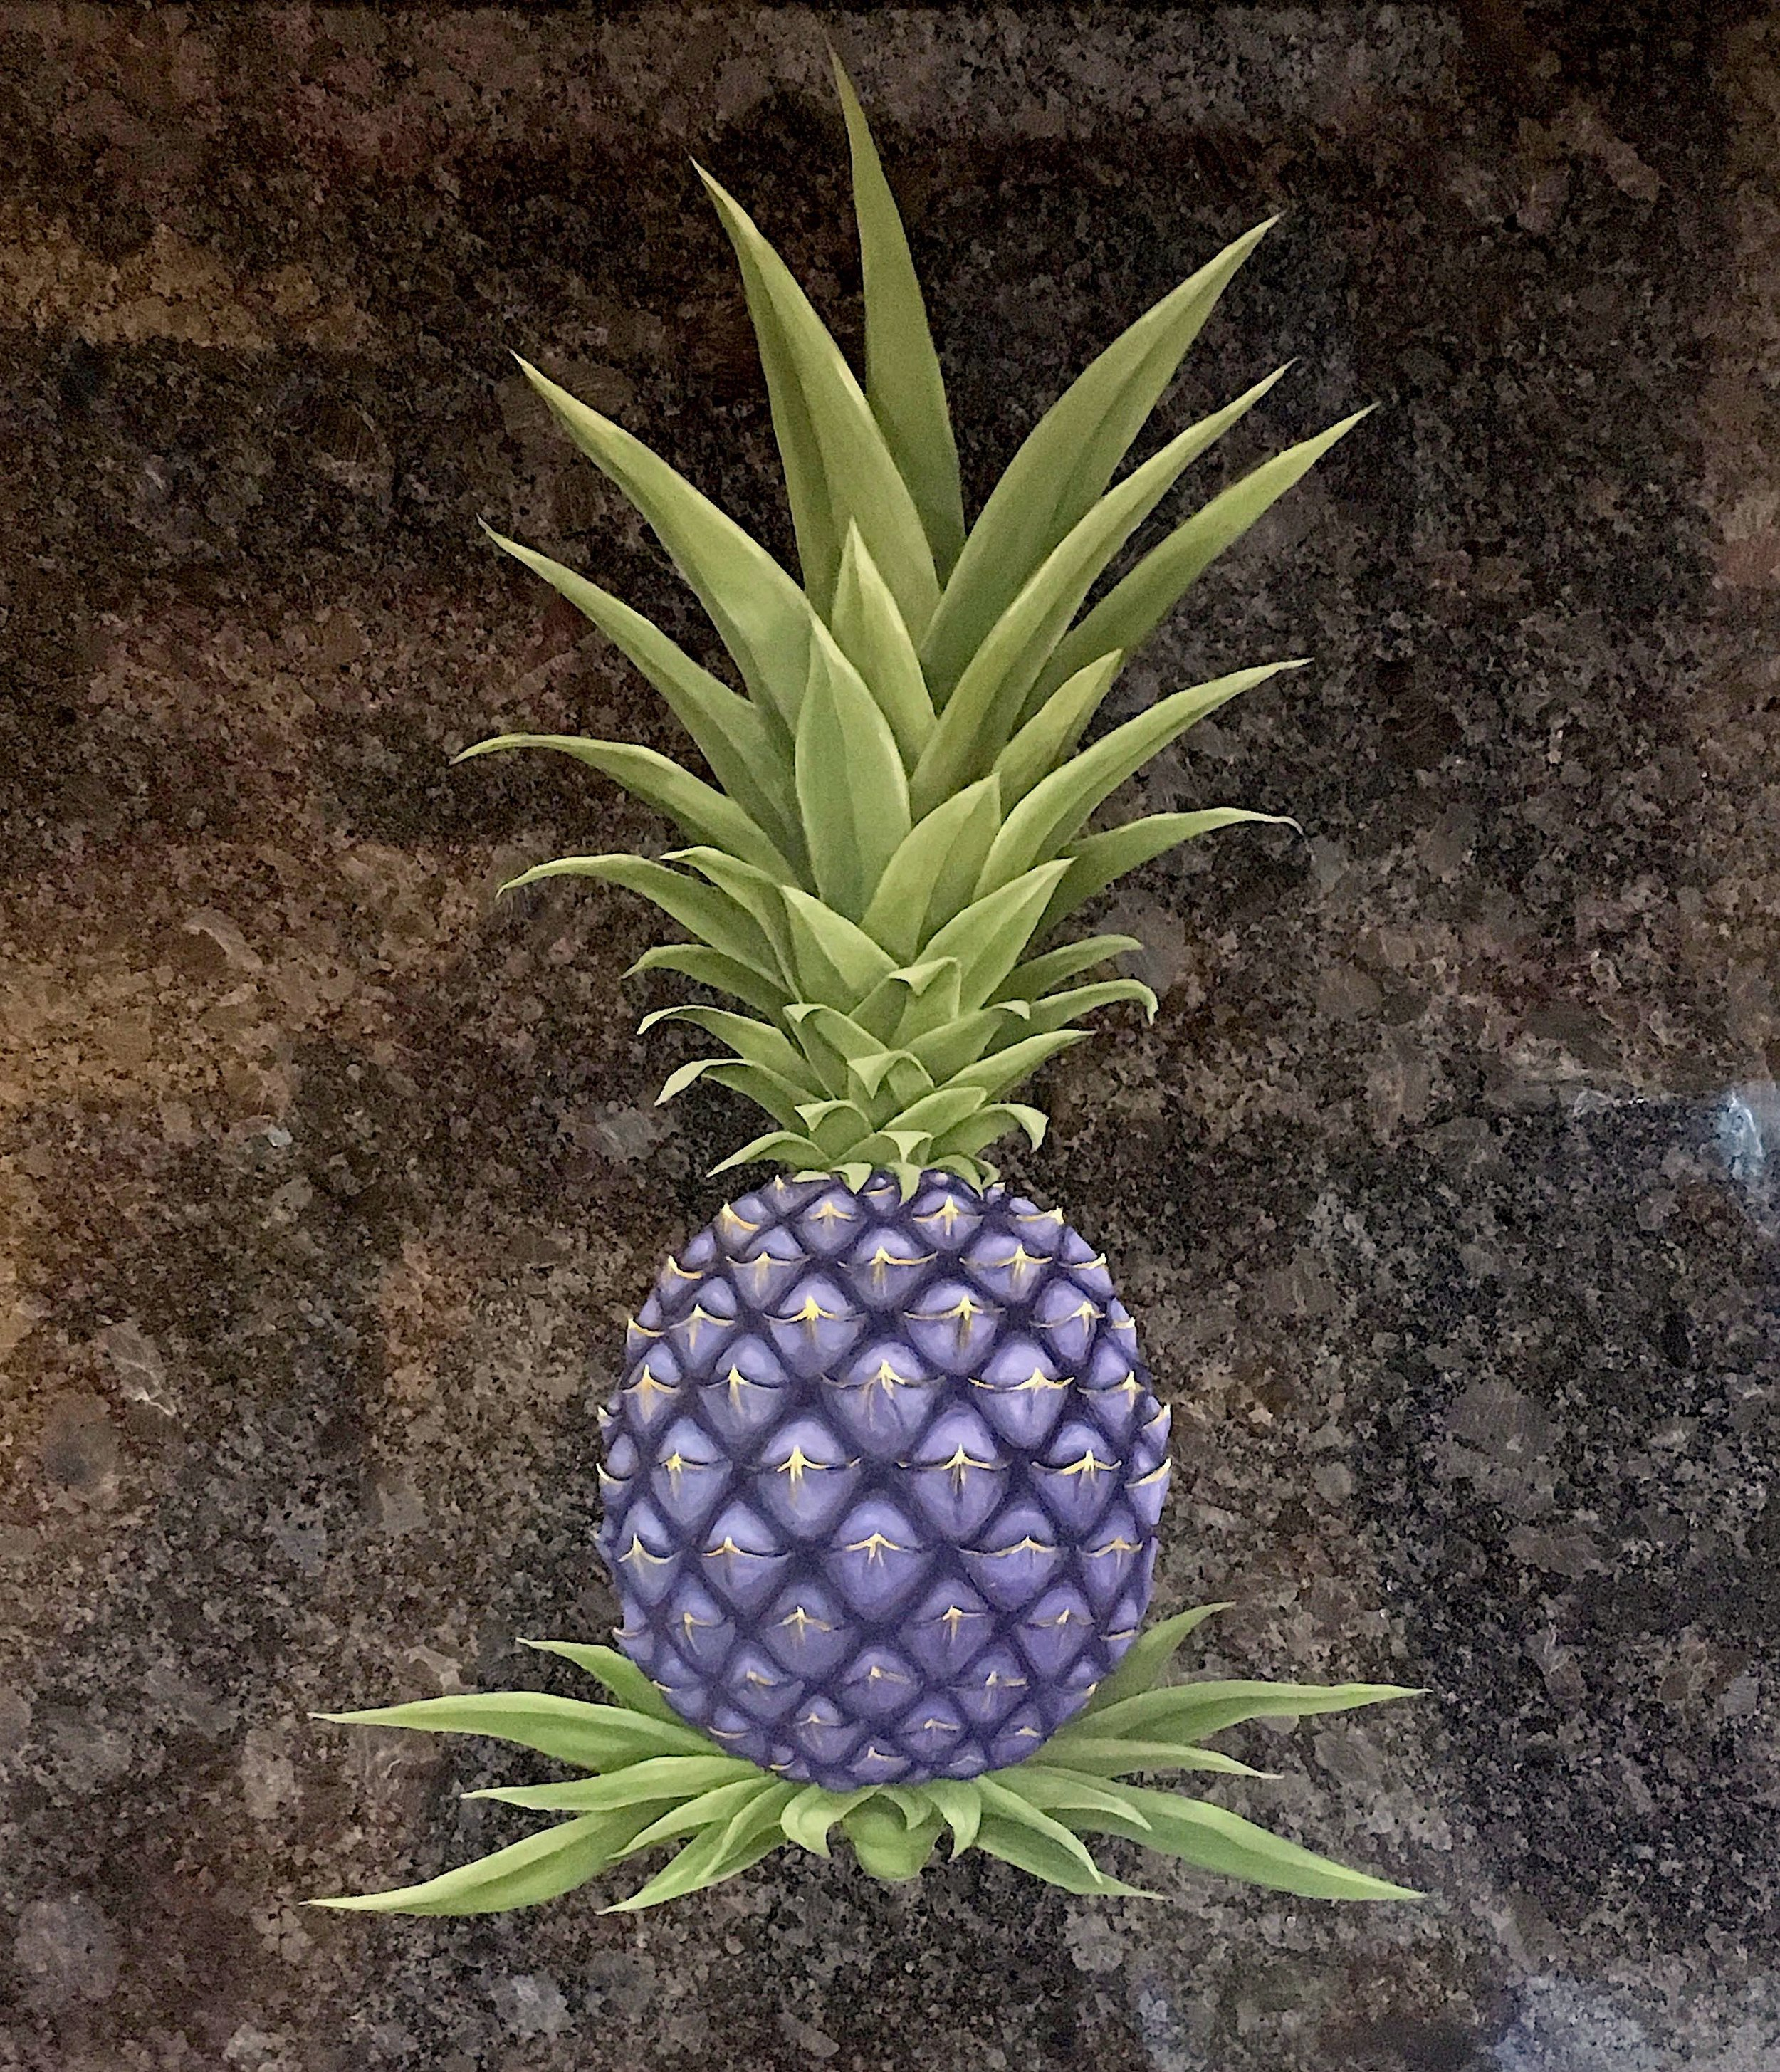 Pineapple mural on granite in Southboro, MA